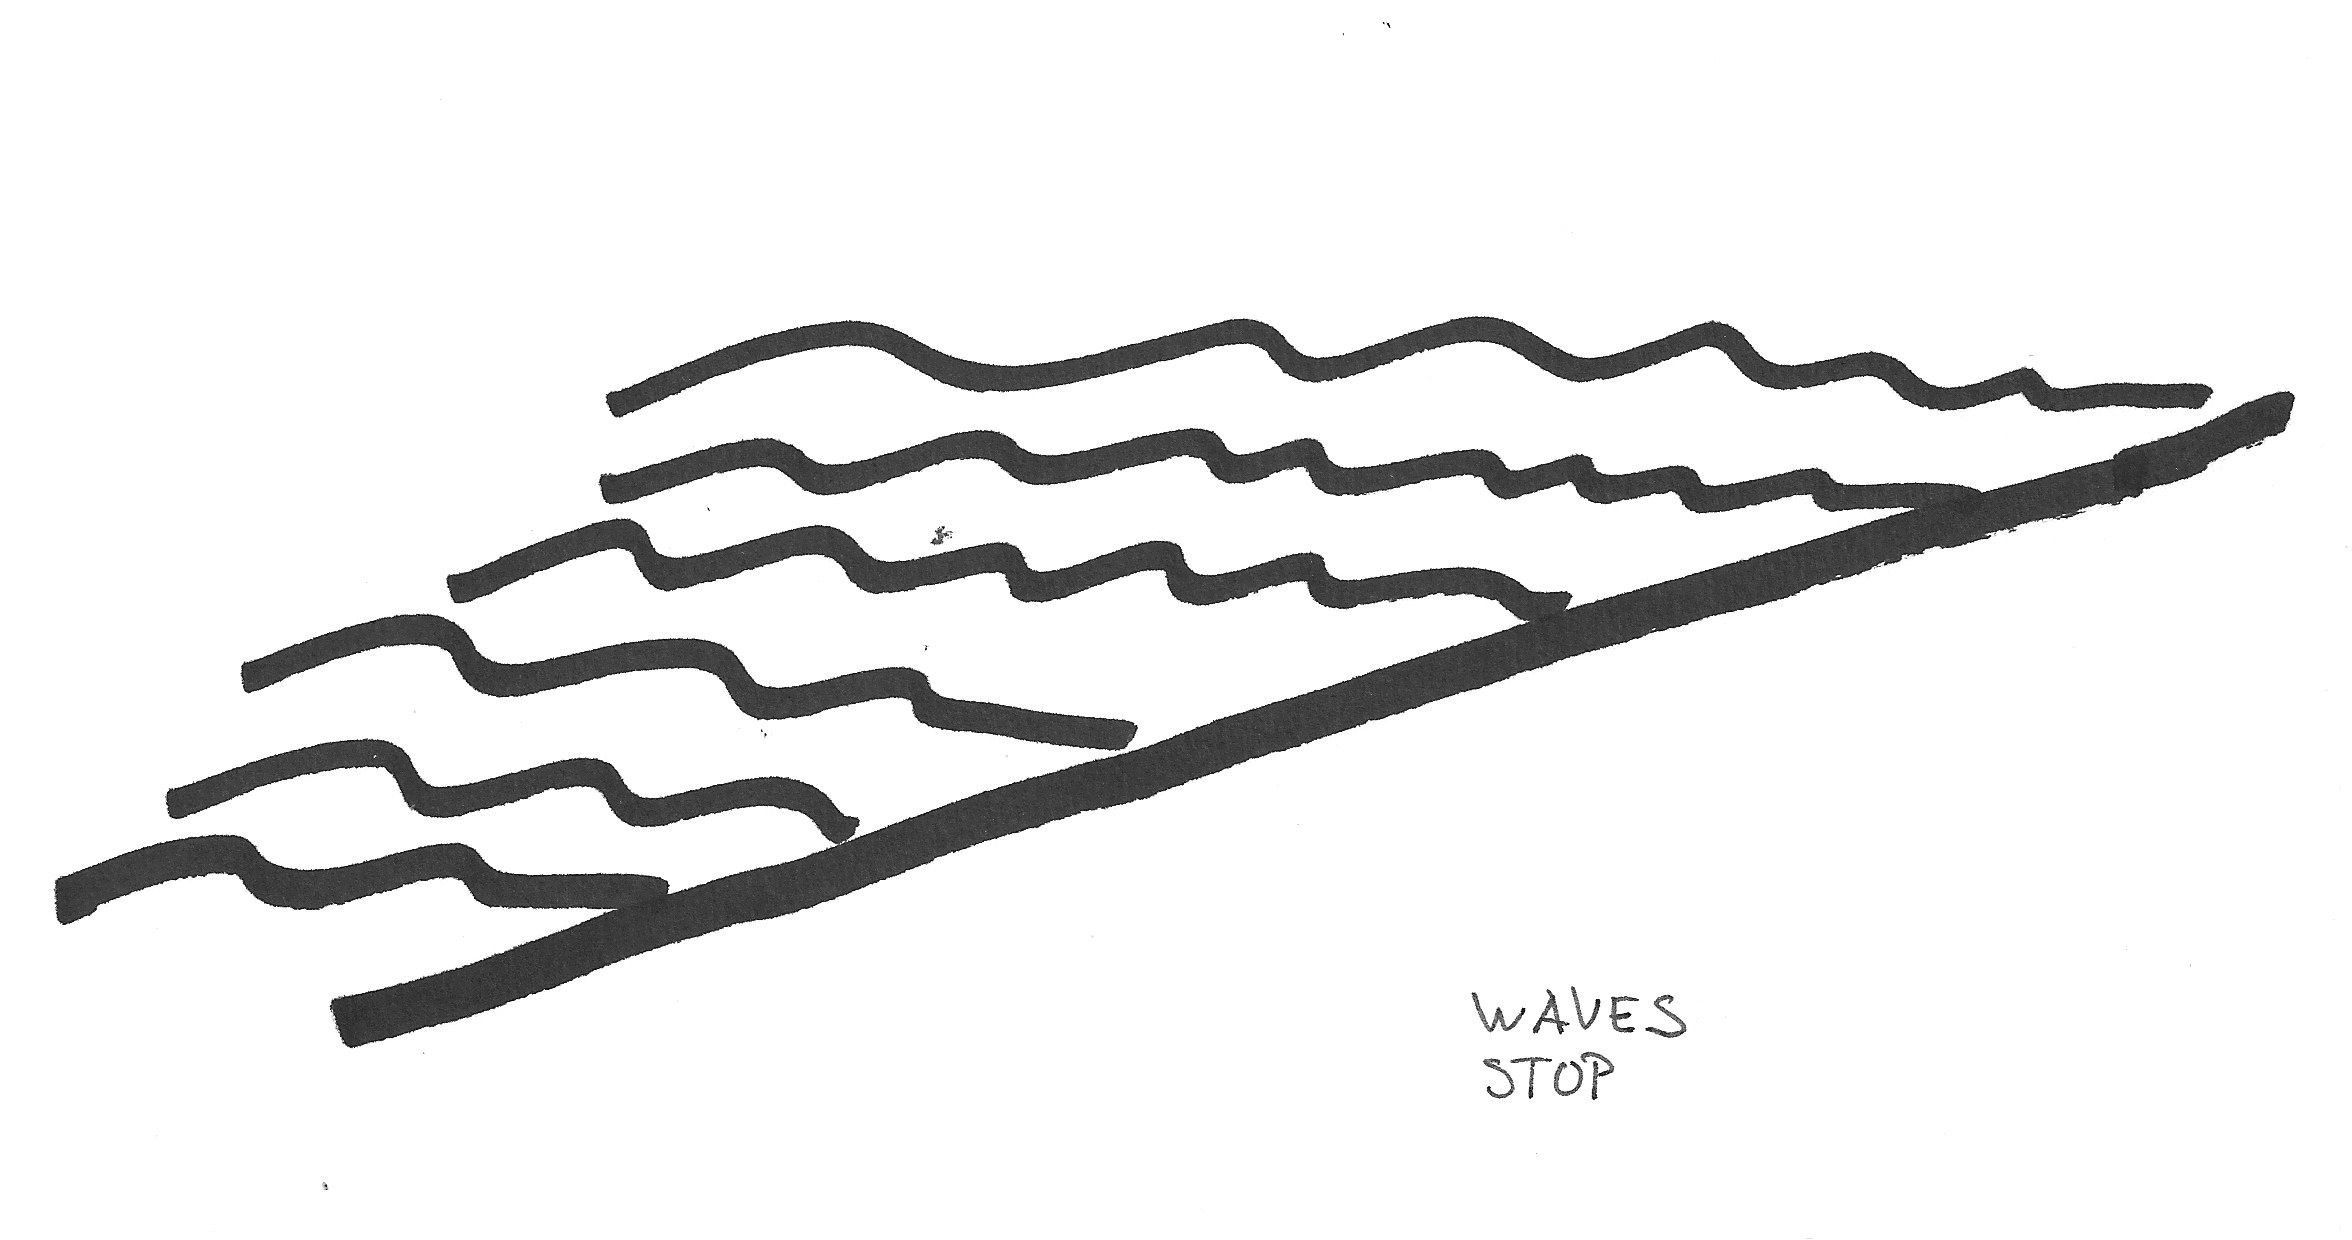 water%20waves%20clipart%20black%20and%20white